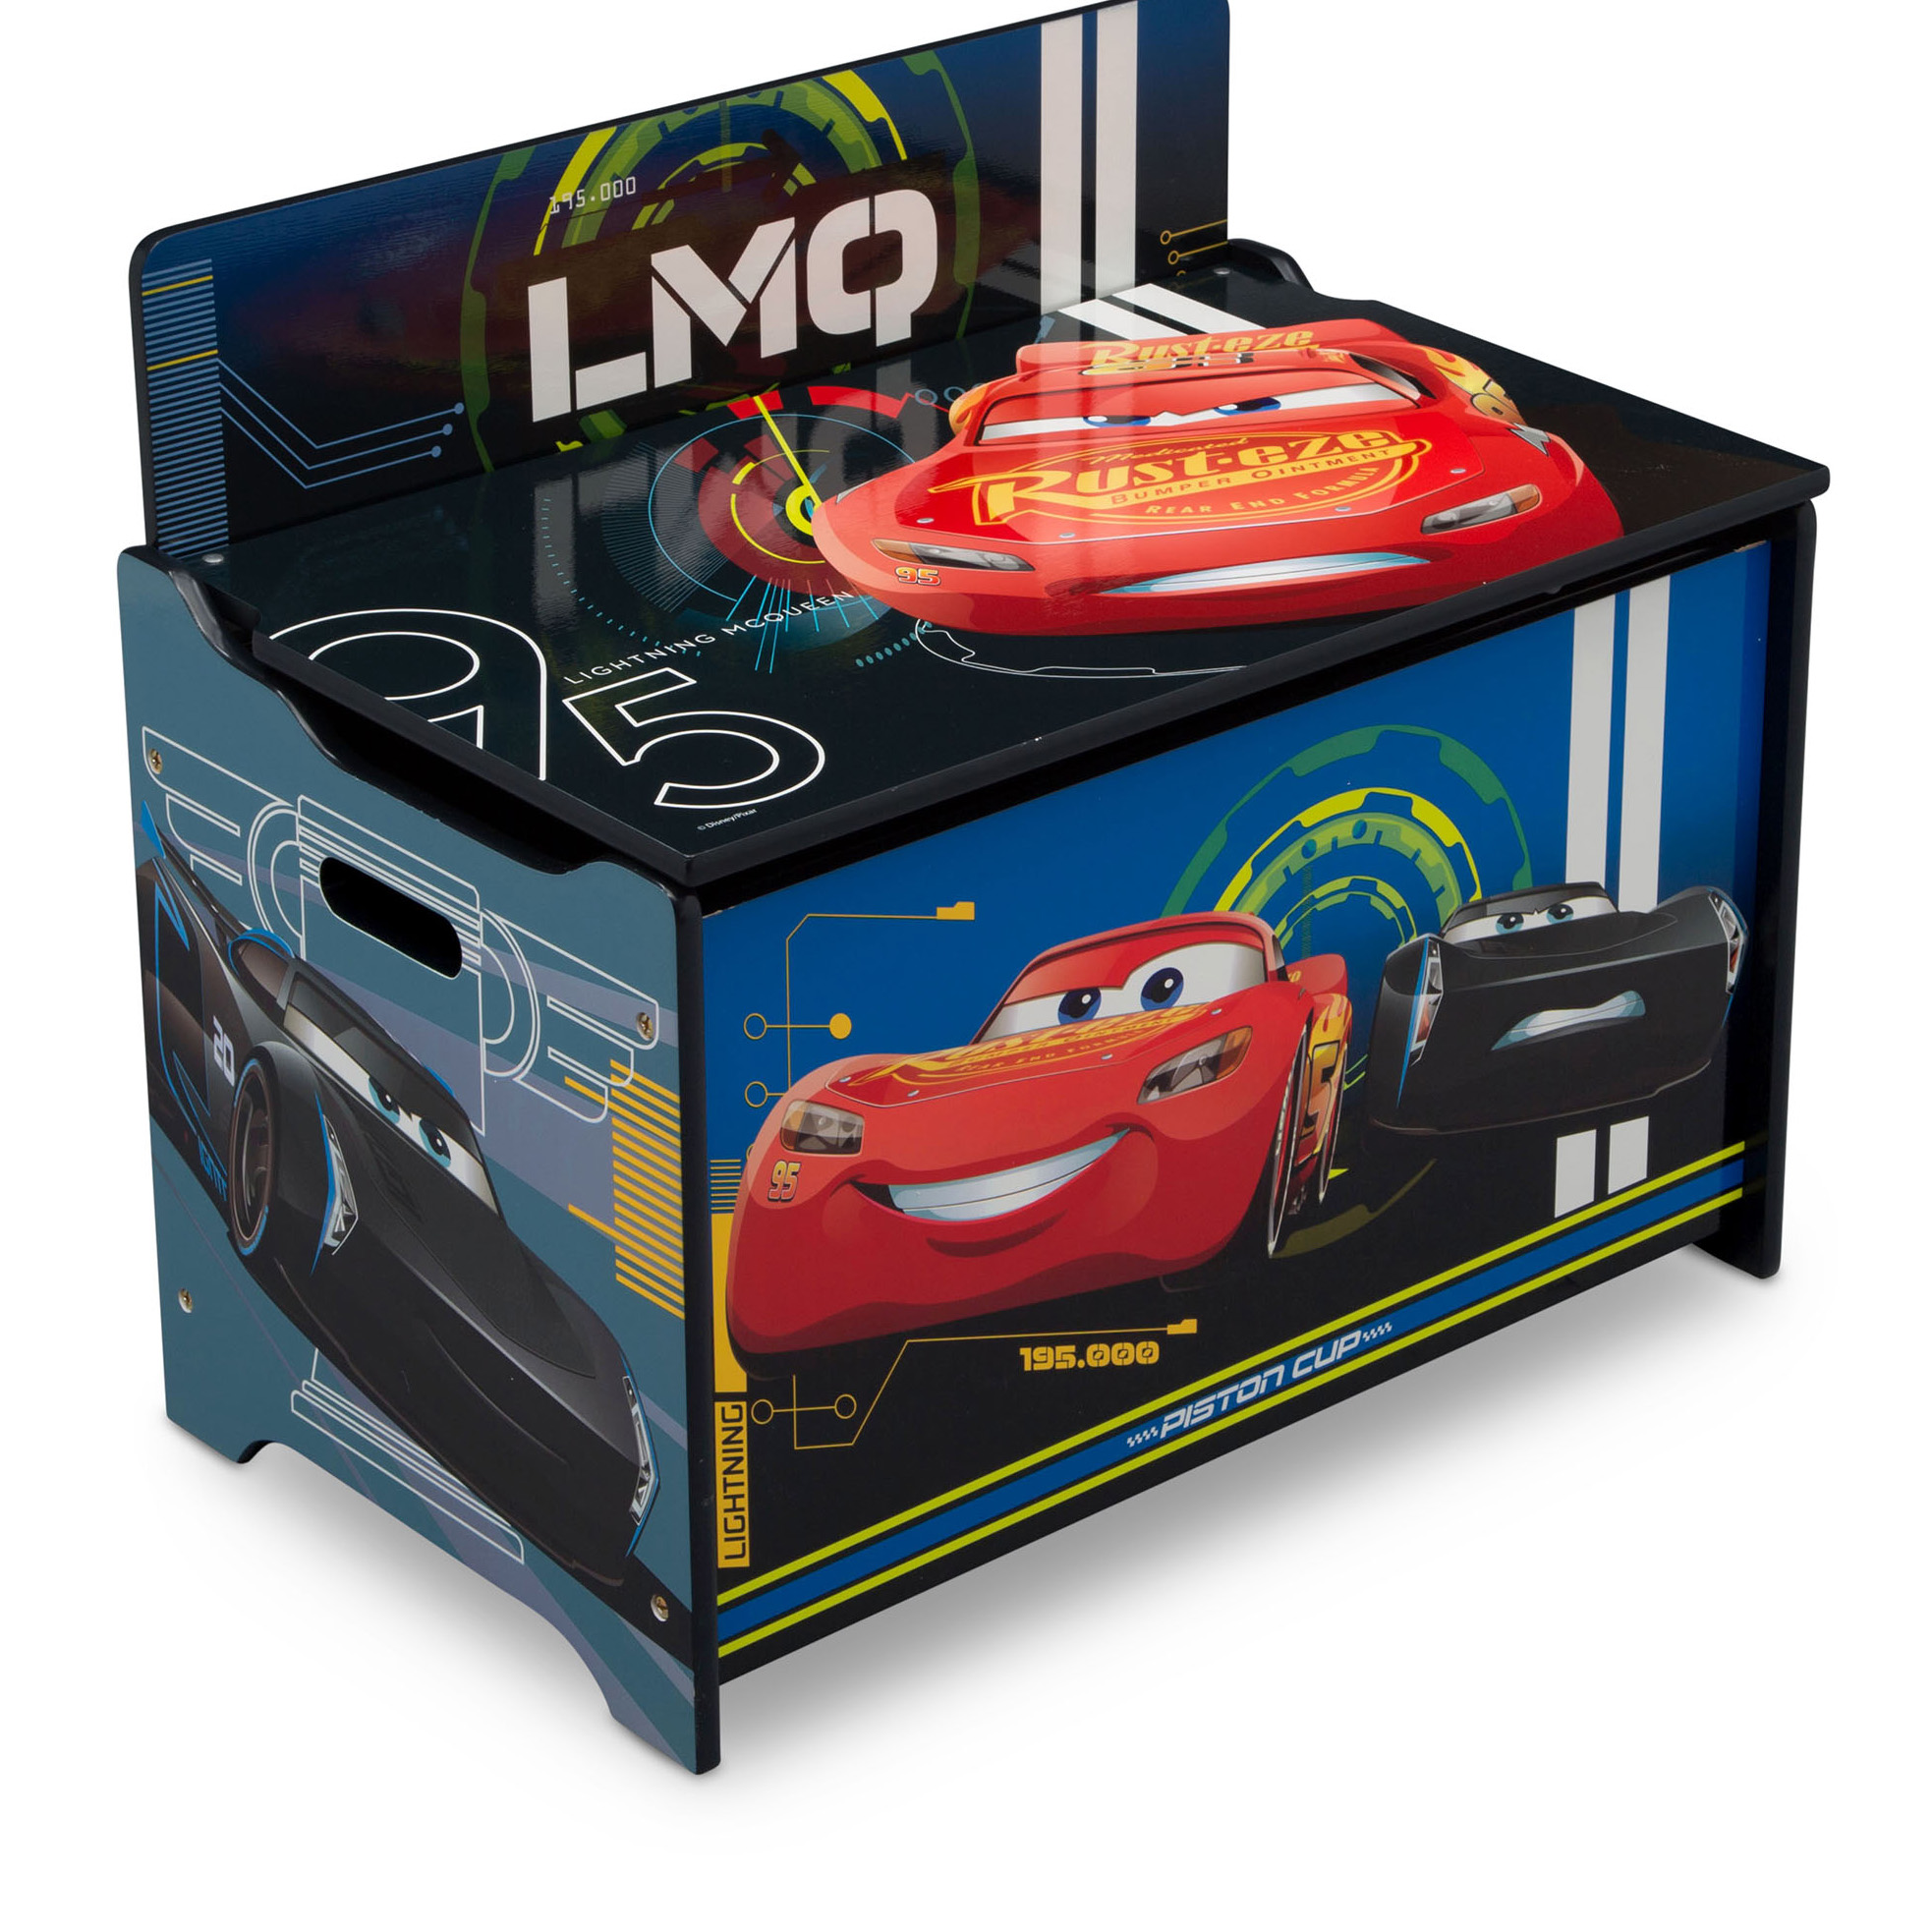 Disney/Pixar Cars Deluxe Toy Box